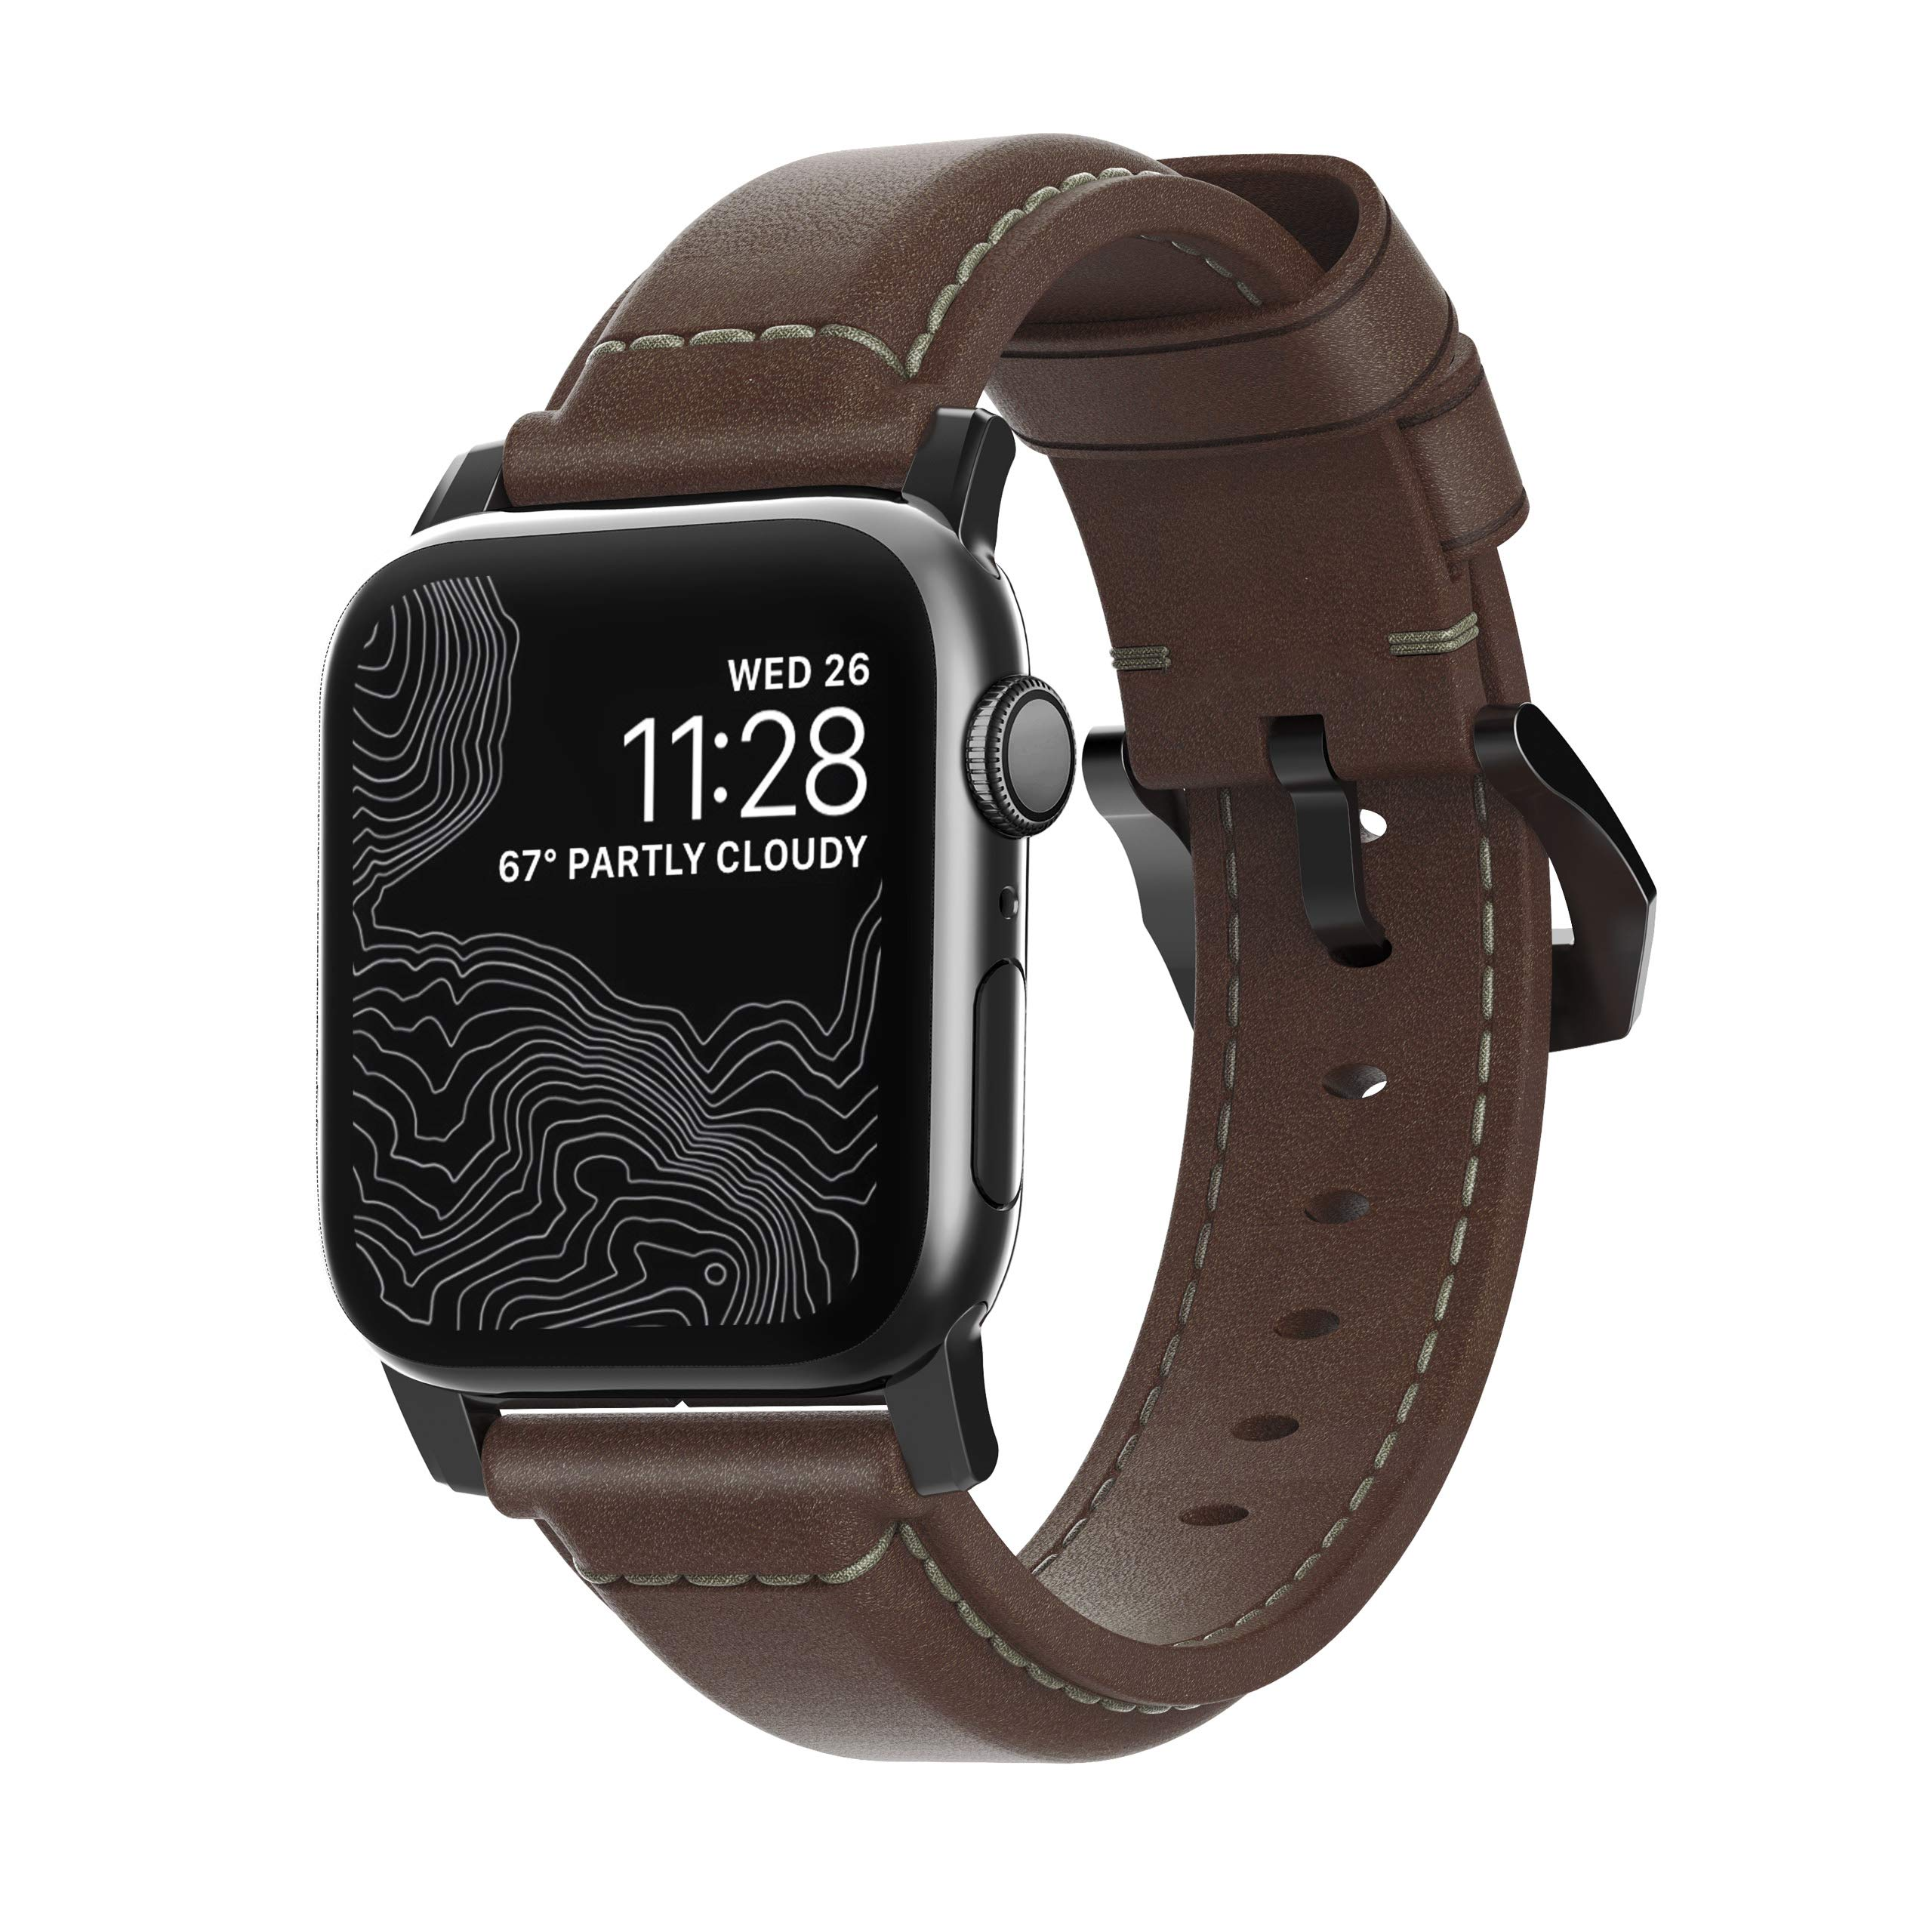 Nomad Traditional Strap for Apple Watch 40mm/38mm | Rustic Brown Horween Leather | Black Hardware by Nomad